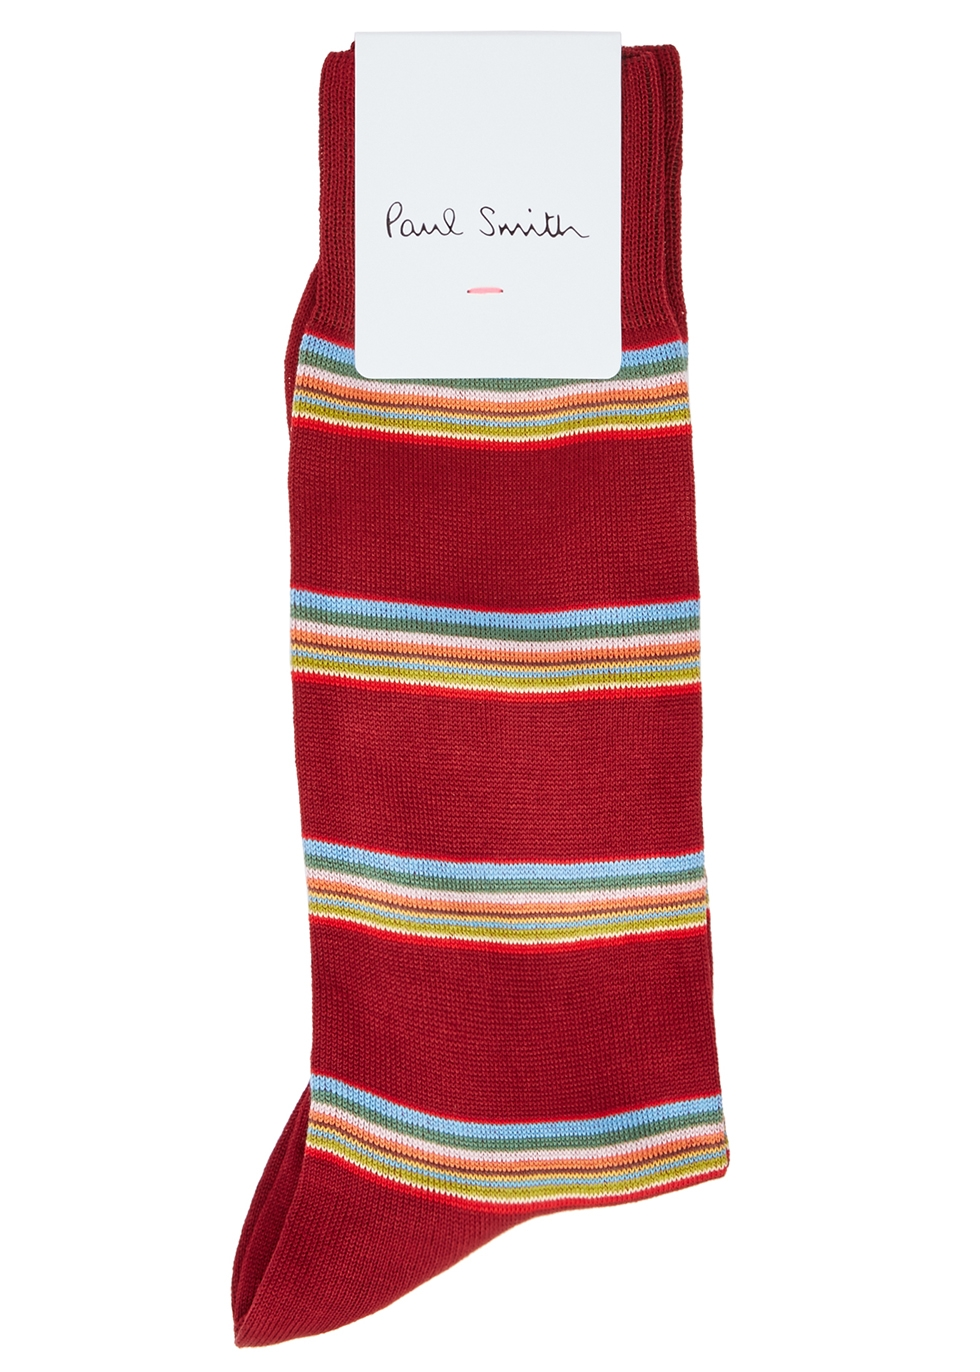 Burgundy striped cotton-blend socks - Paul Smith